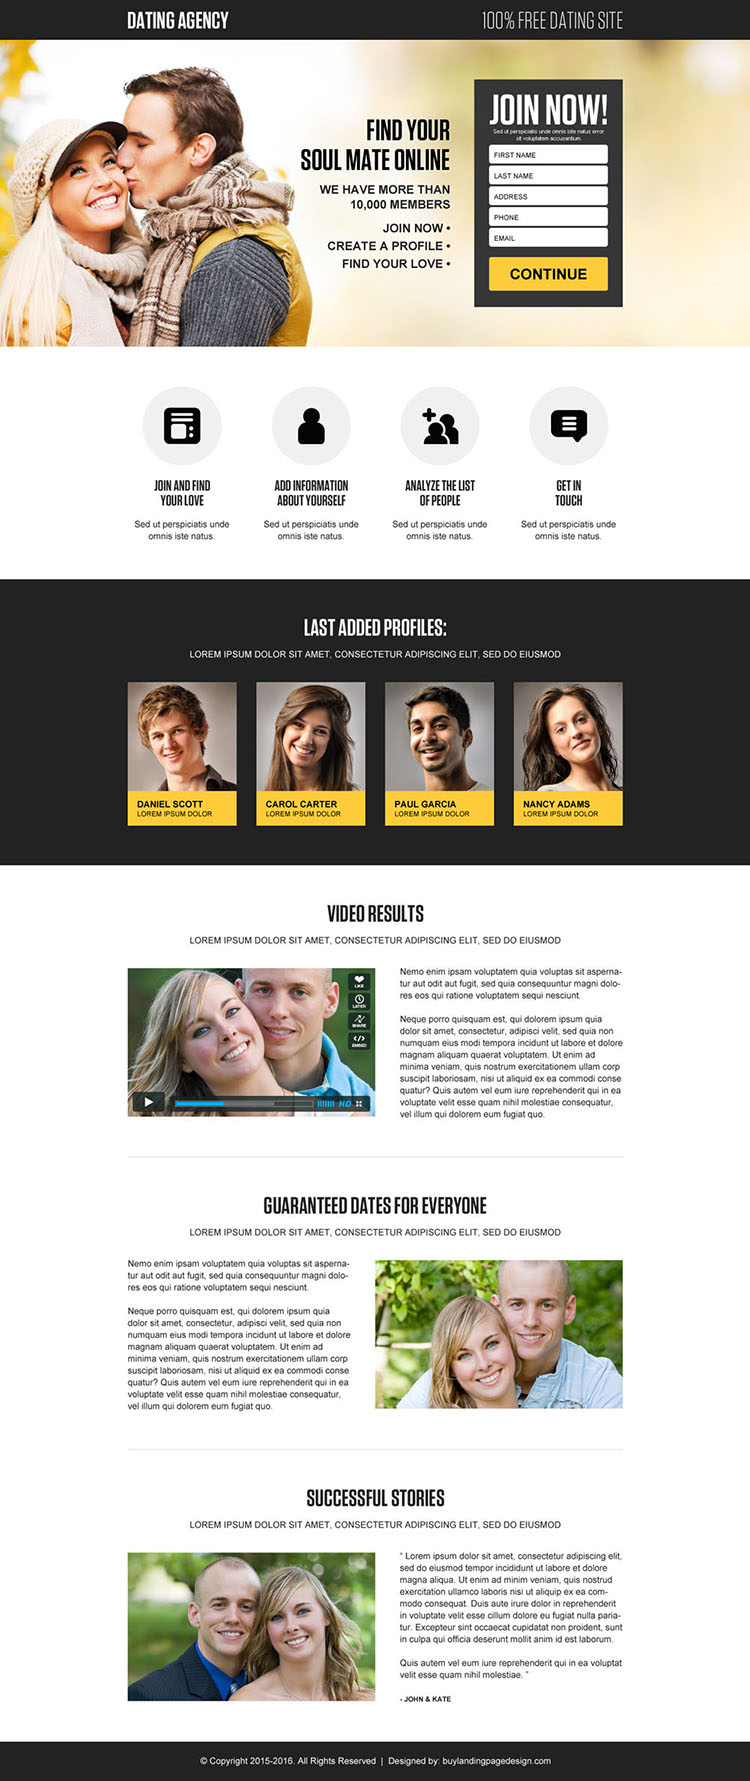 free dating site lead gen landing page design